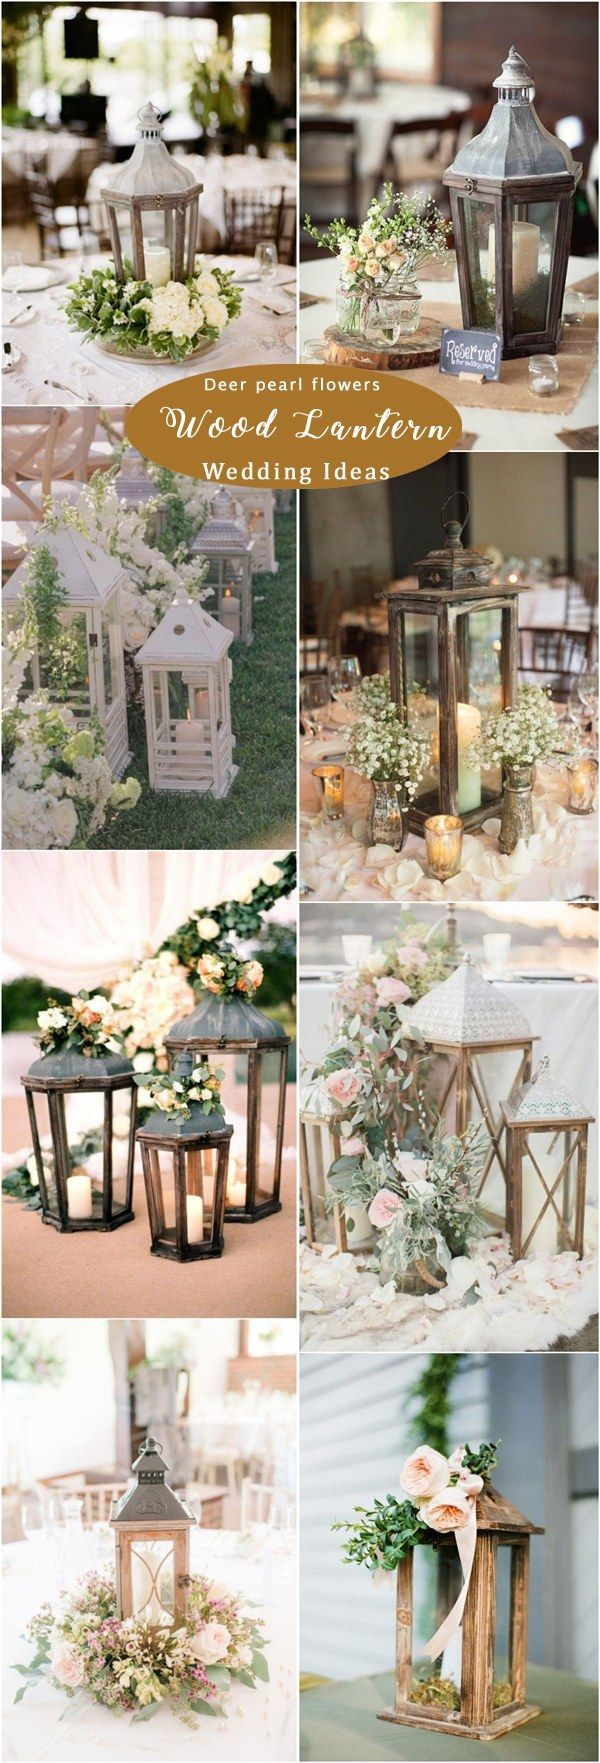 Country wedding decoration ideas   Rustic Woodsy Wedding Decor Ideas for   Woodsy wedding